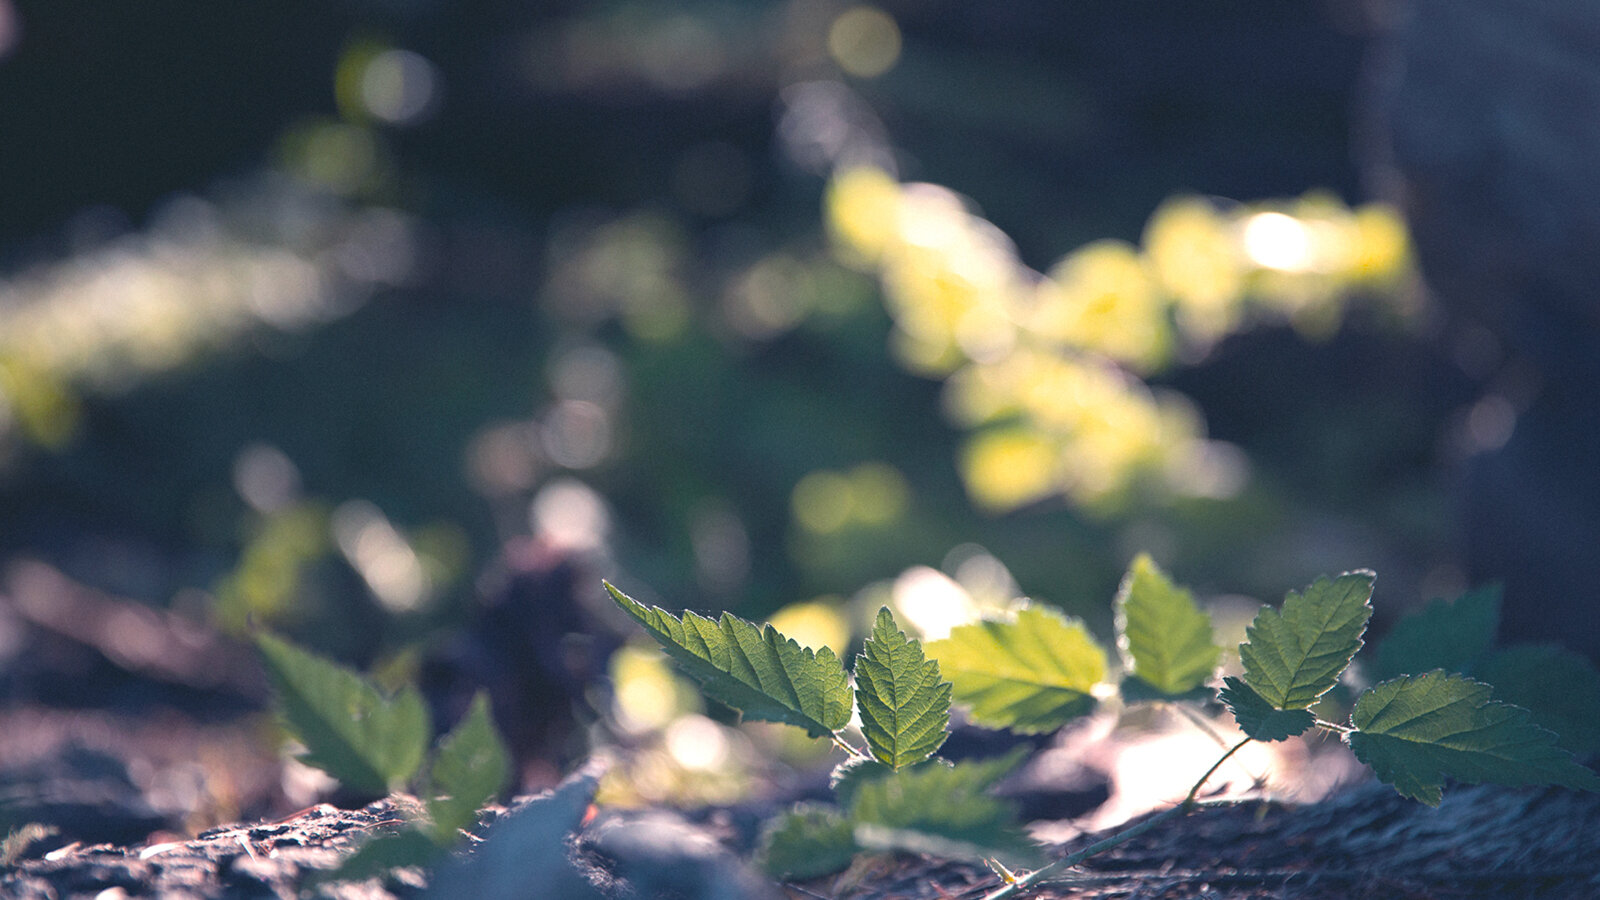 Close up of tiny branch with green leaves